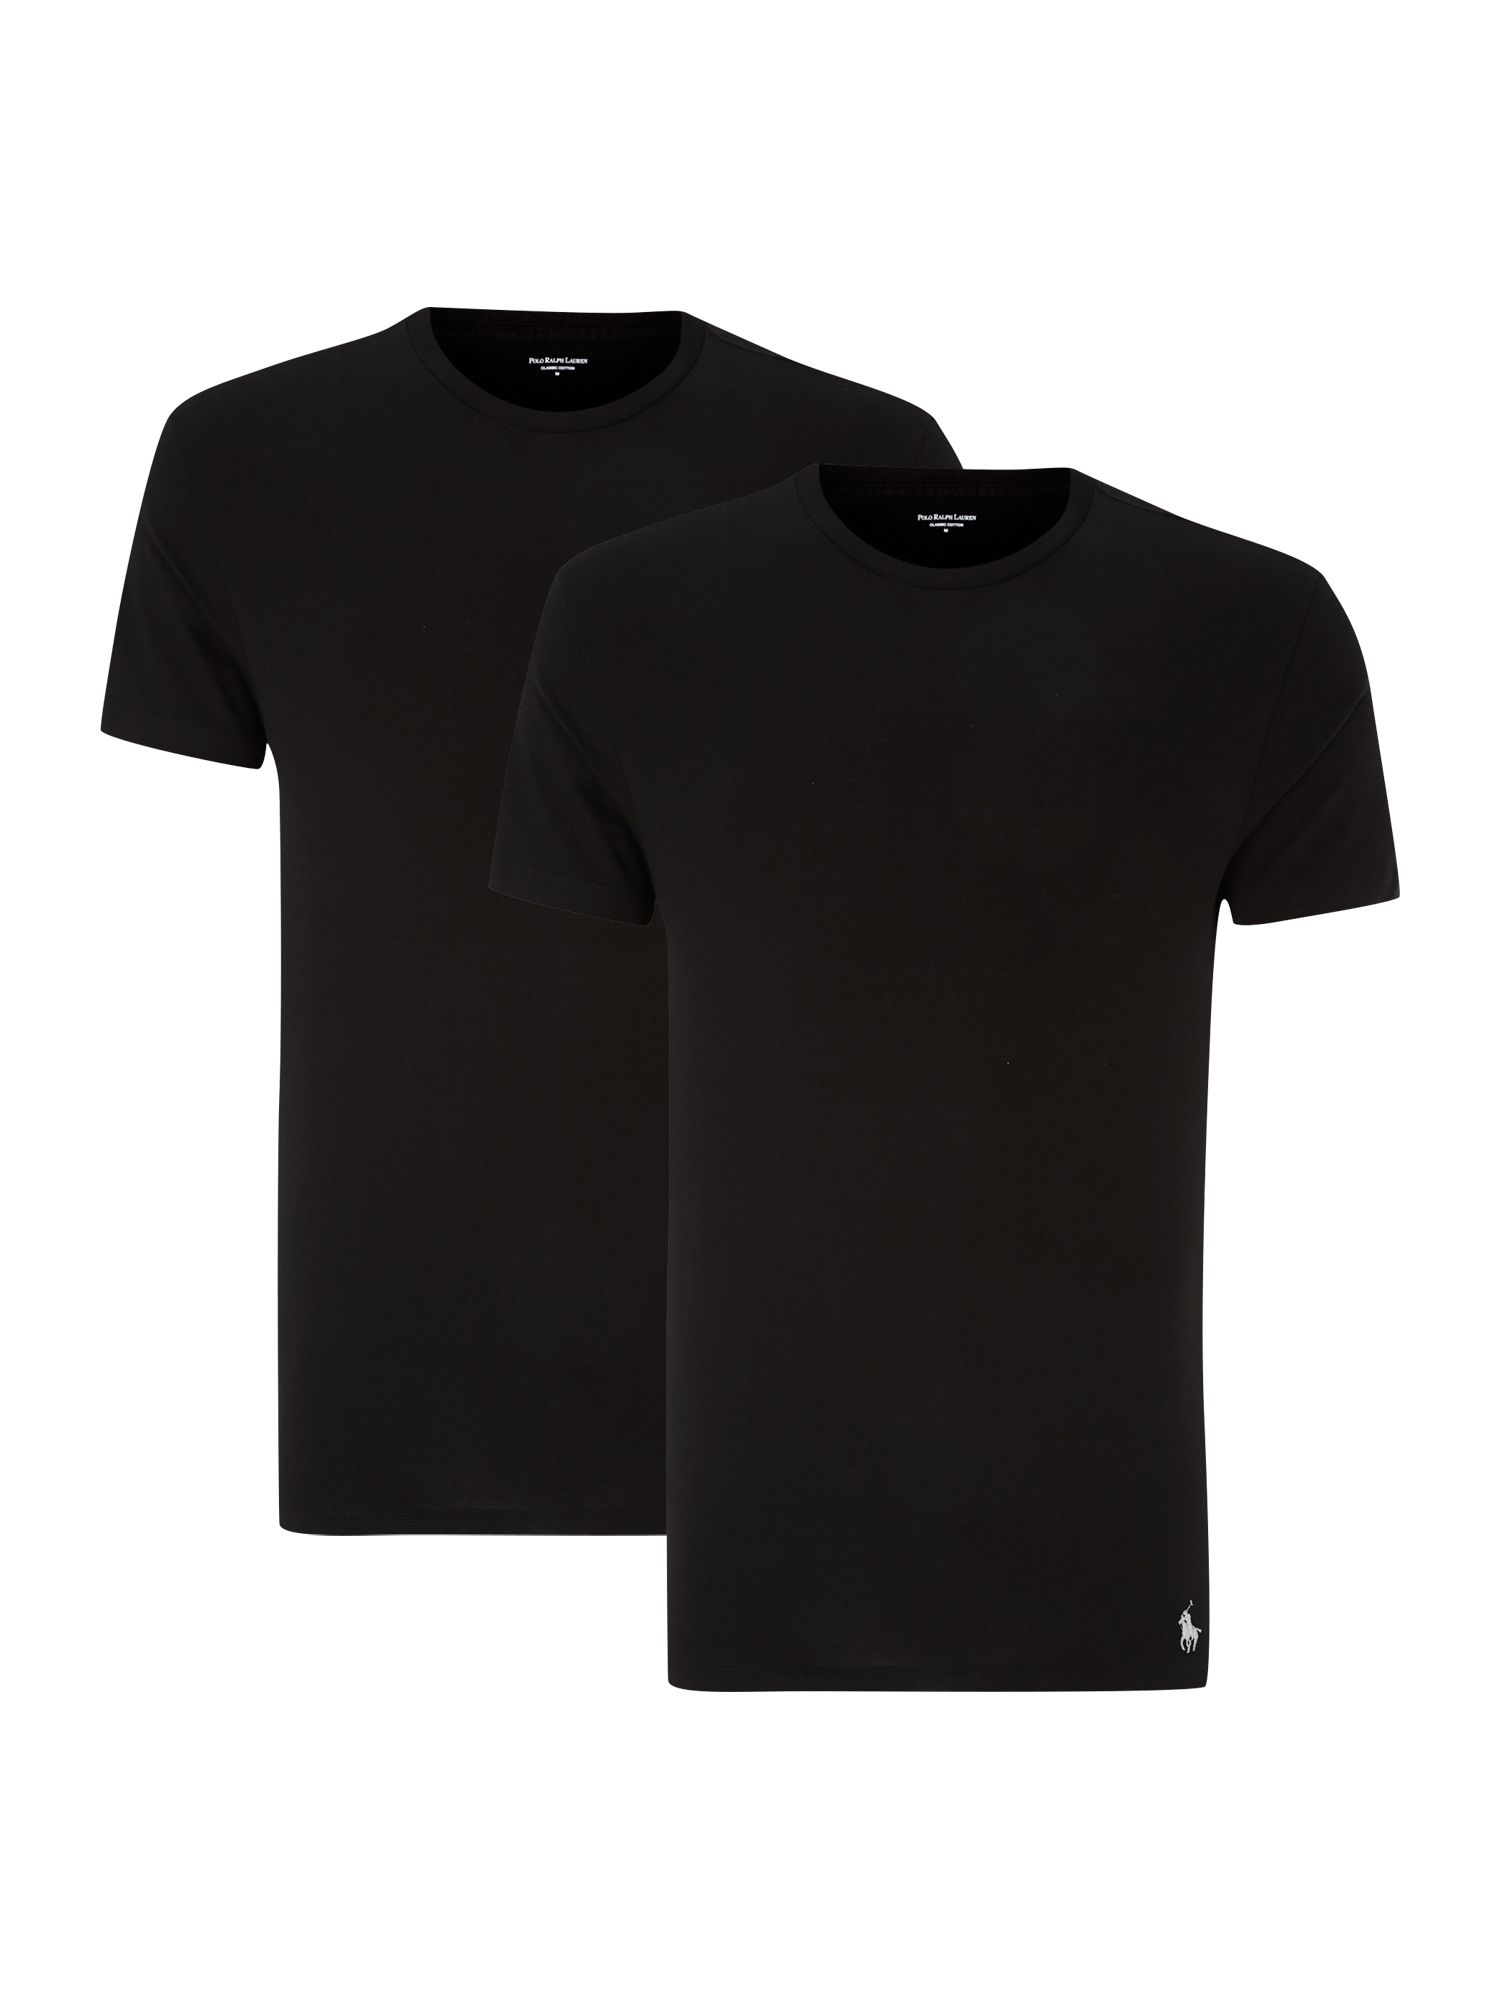 2 pack classic crew neck t-shirt